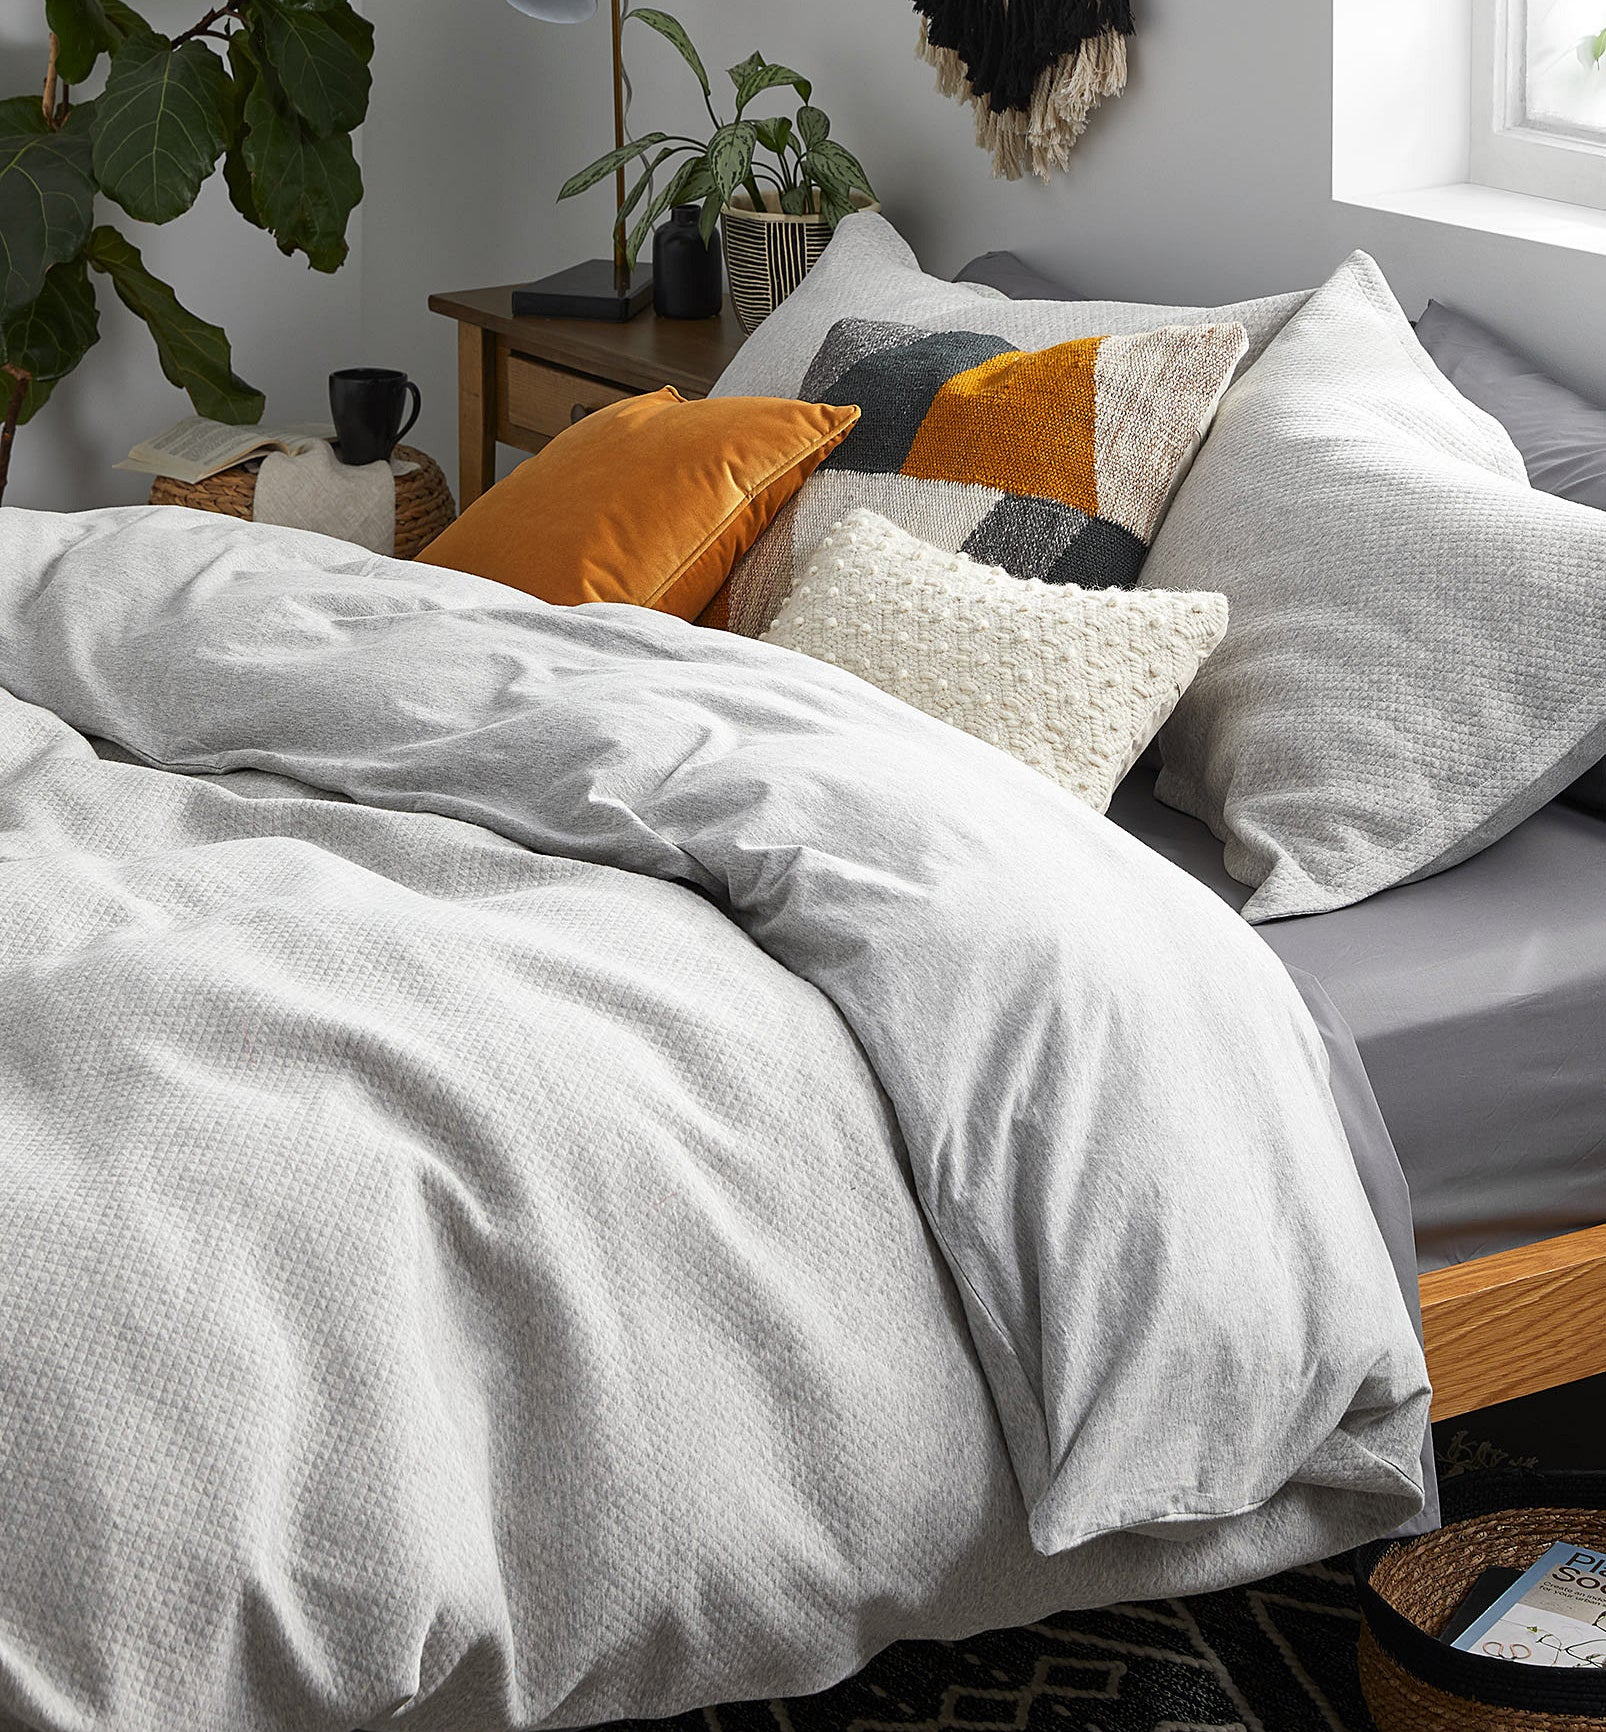 A bed with a thick duvet and pillows on it